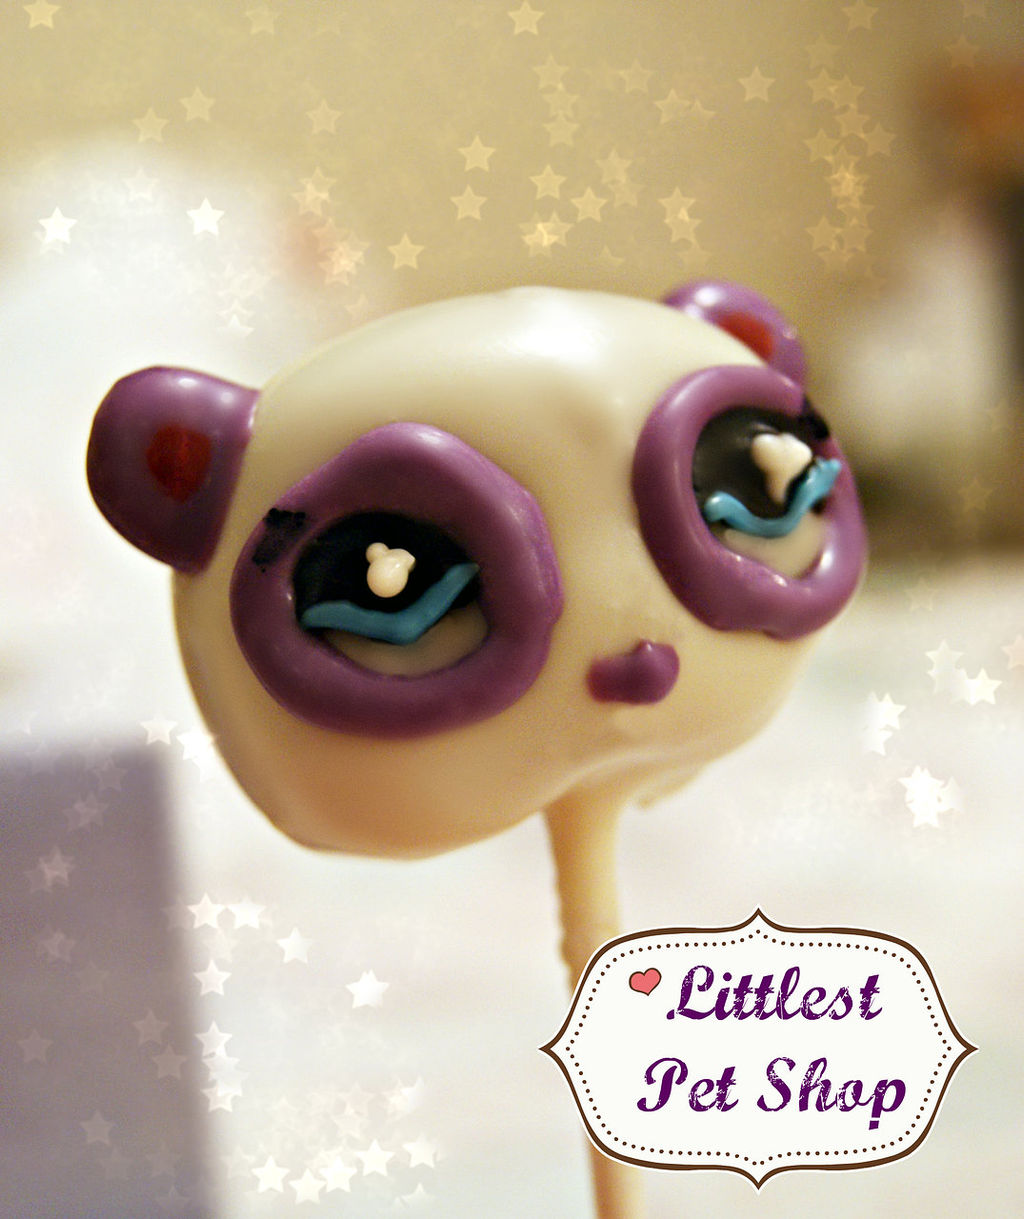 littlest pet shop cake pop